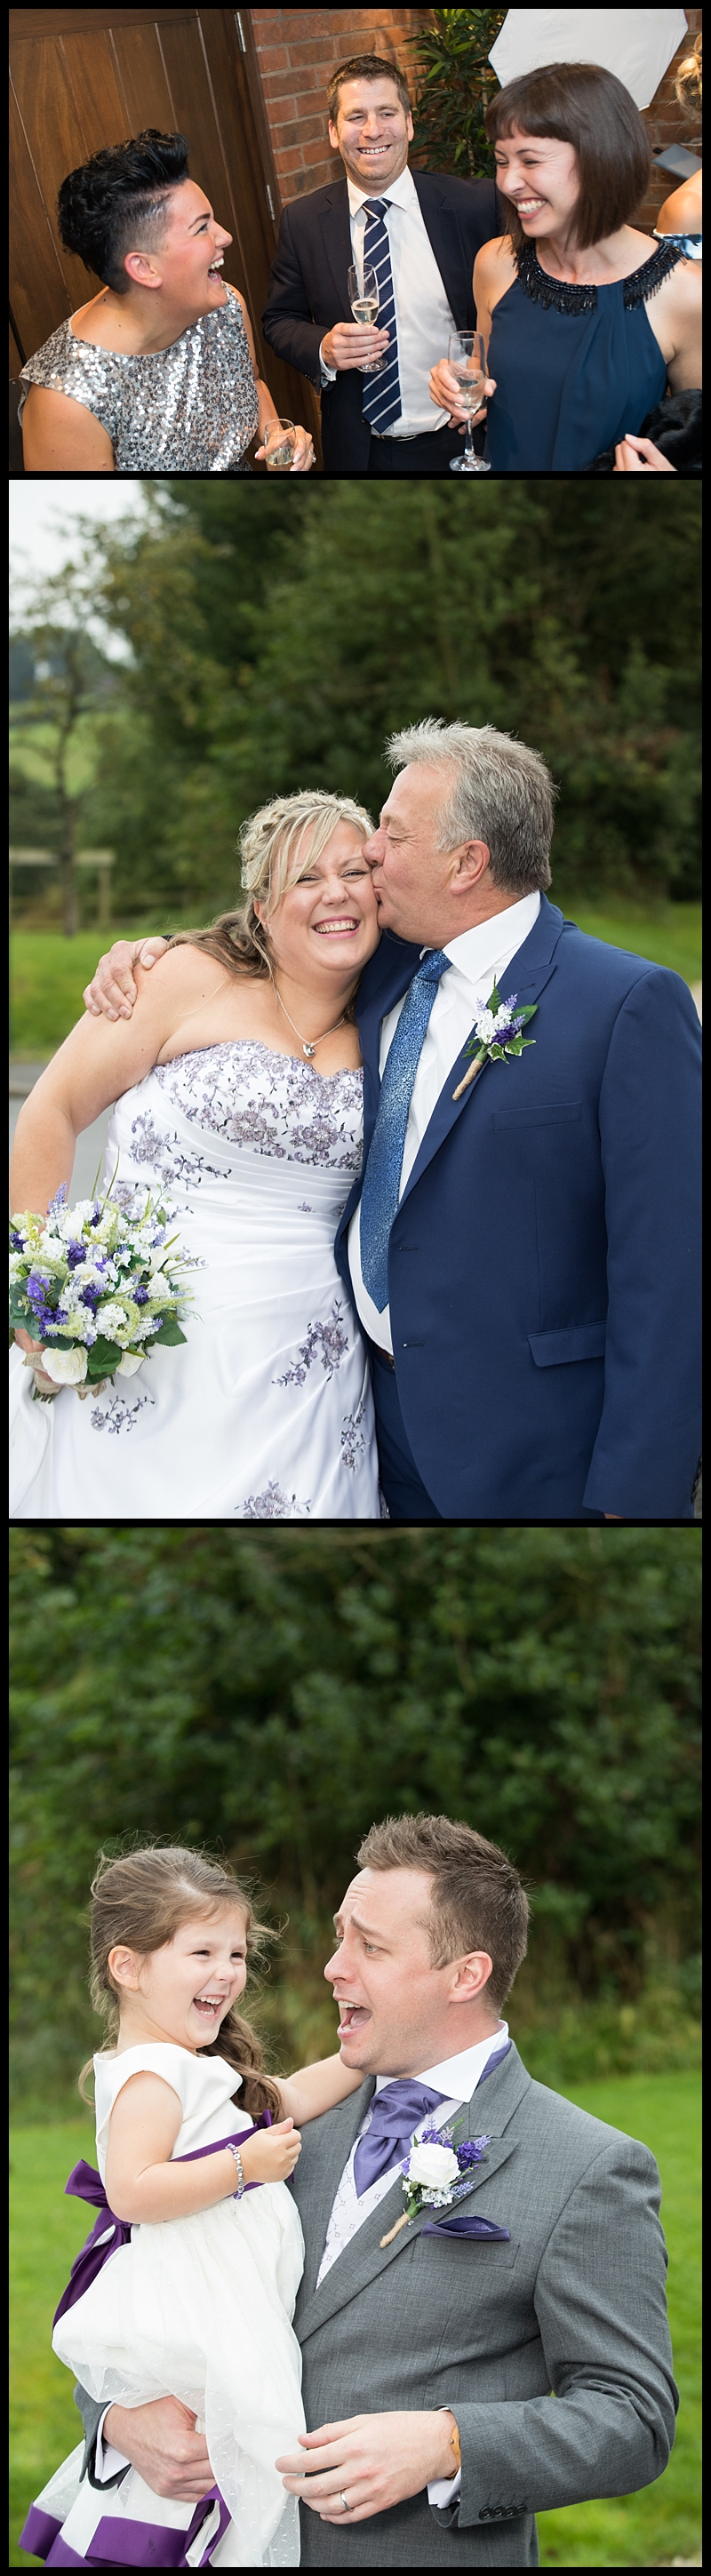 nottingham wedding photographer_0373.jpg